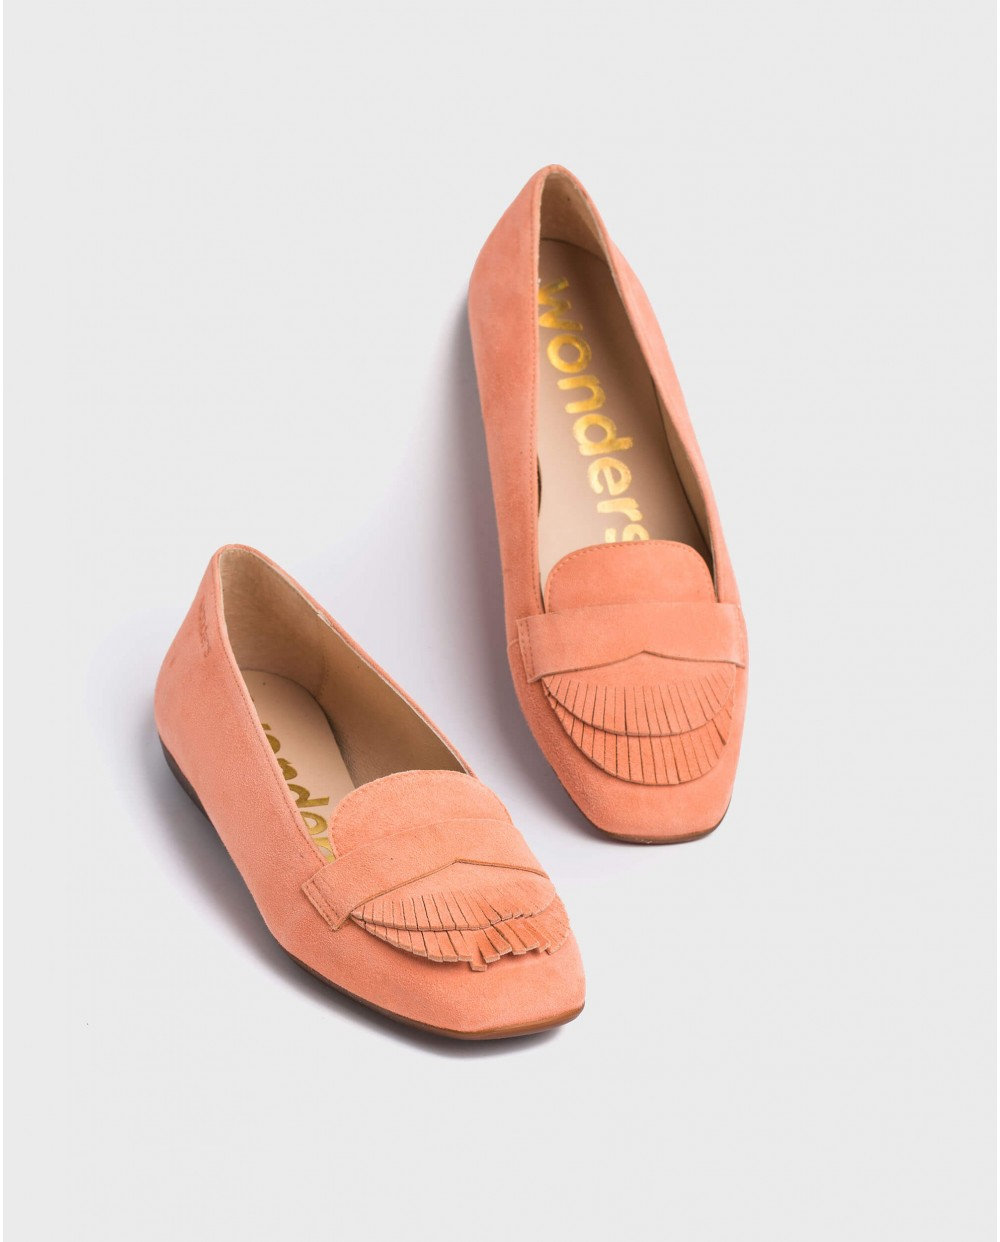 Wonders-Flat Shoes-Leather ballet pump with double fringe